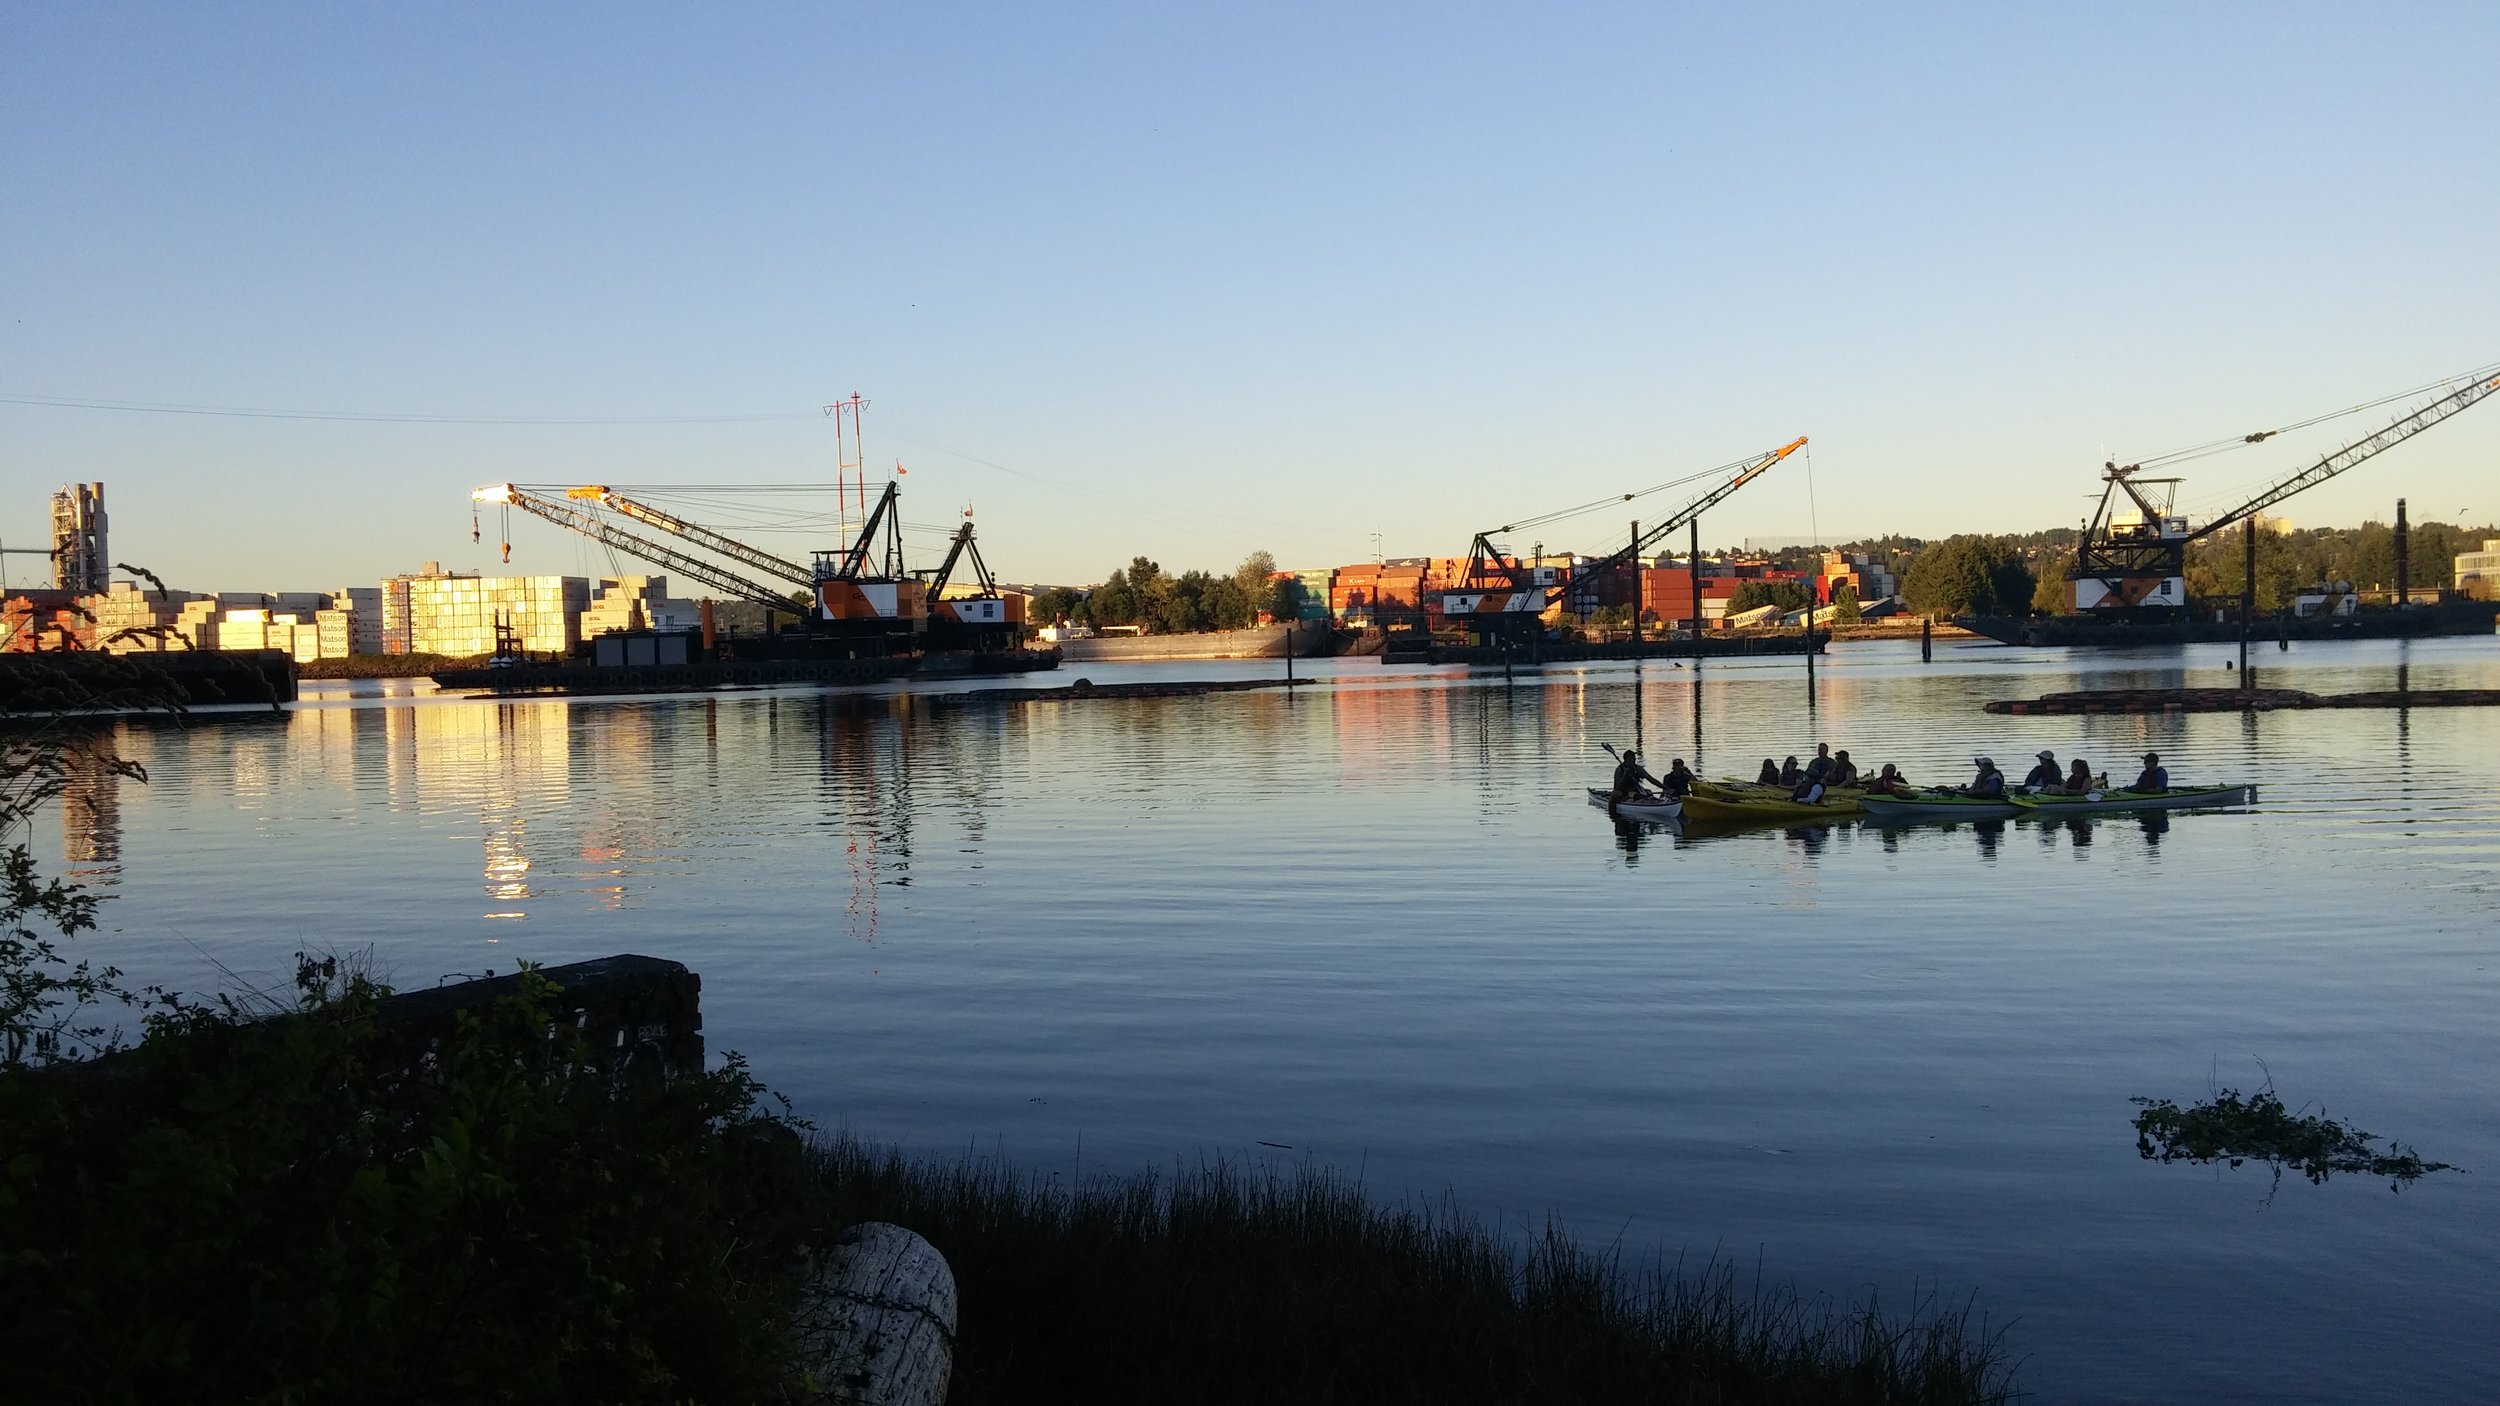 The Duwamish Rowing Club pushes off for an evening sail. Photo by Hannah Kett.